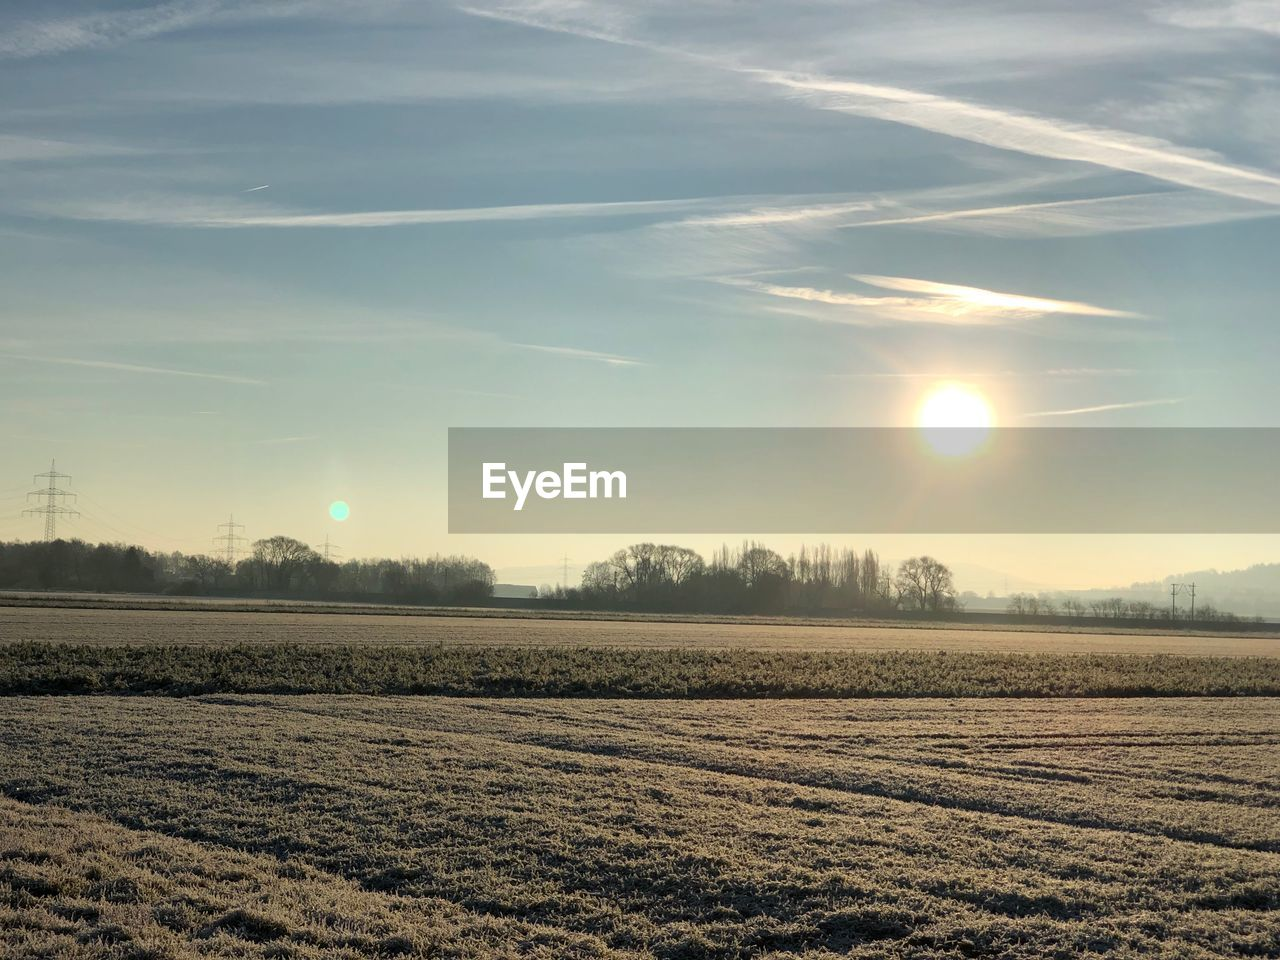 sky, landscape, tranquil scene, scenics - nature, beauty in nature, field, environment, tranquility, sun, land, sunlight, agriculture, nature, rural scene, no people, plant, sunset, tree, farm, non-urban scene, lens flare, outdoors, plantation